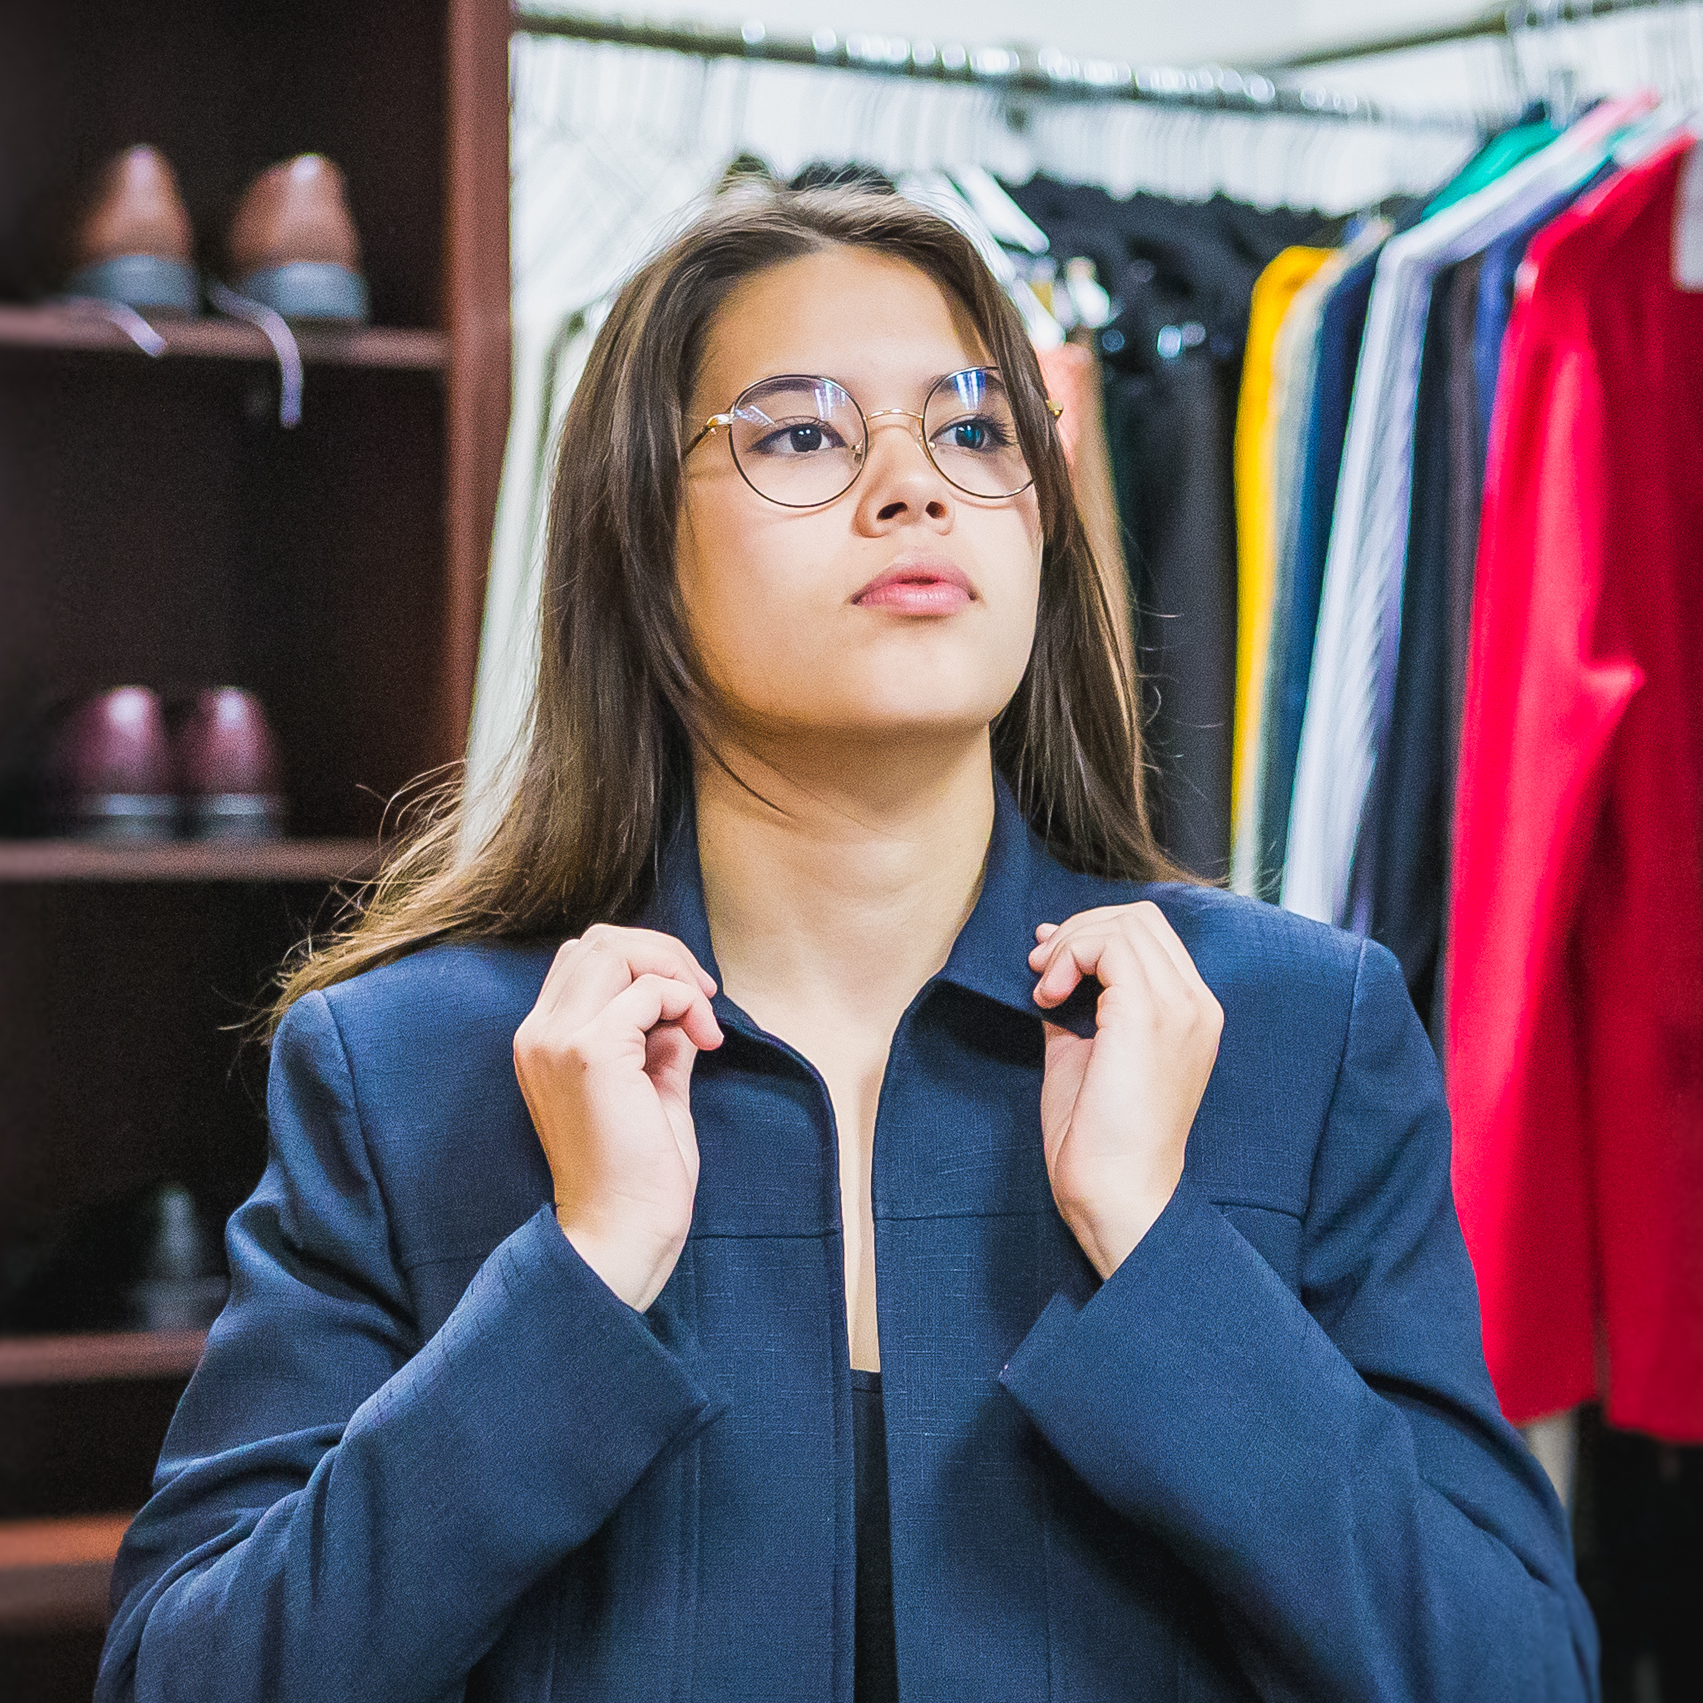 Student tries on blazer in UNC's Professional Attire Closet.